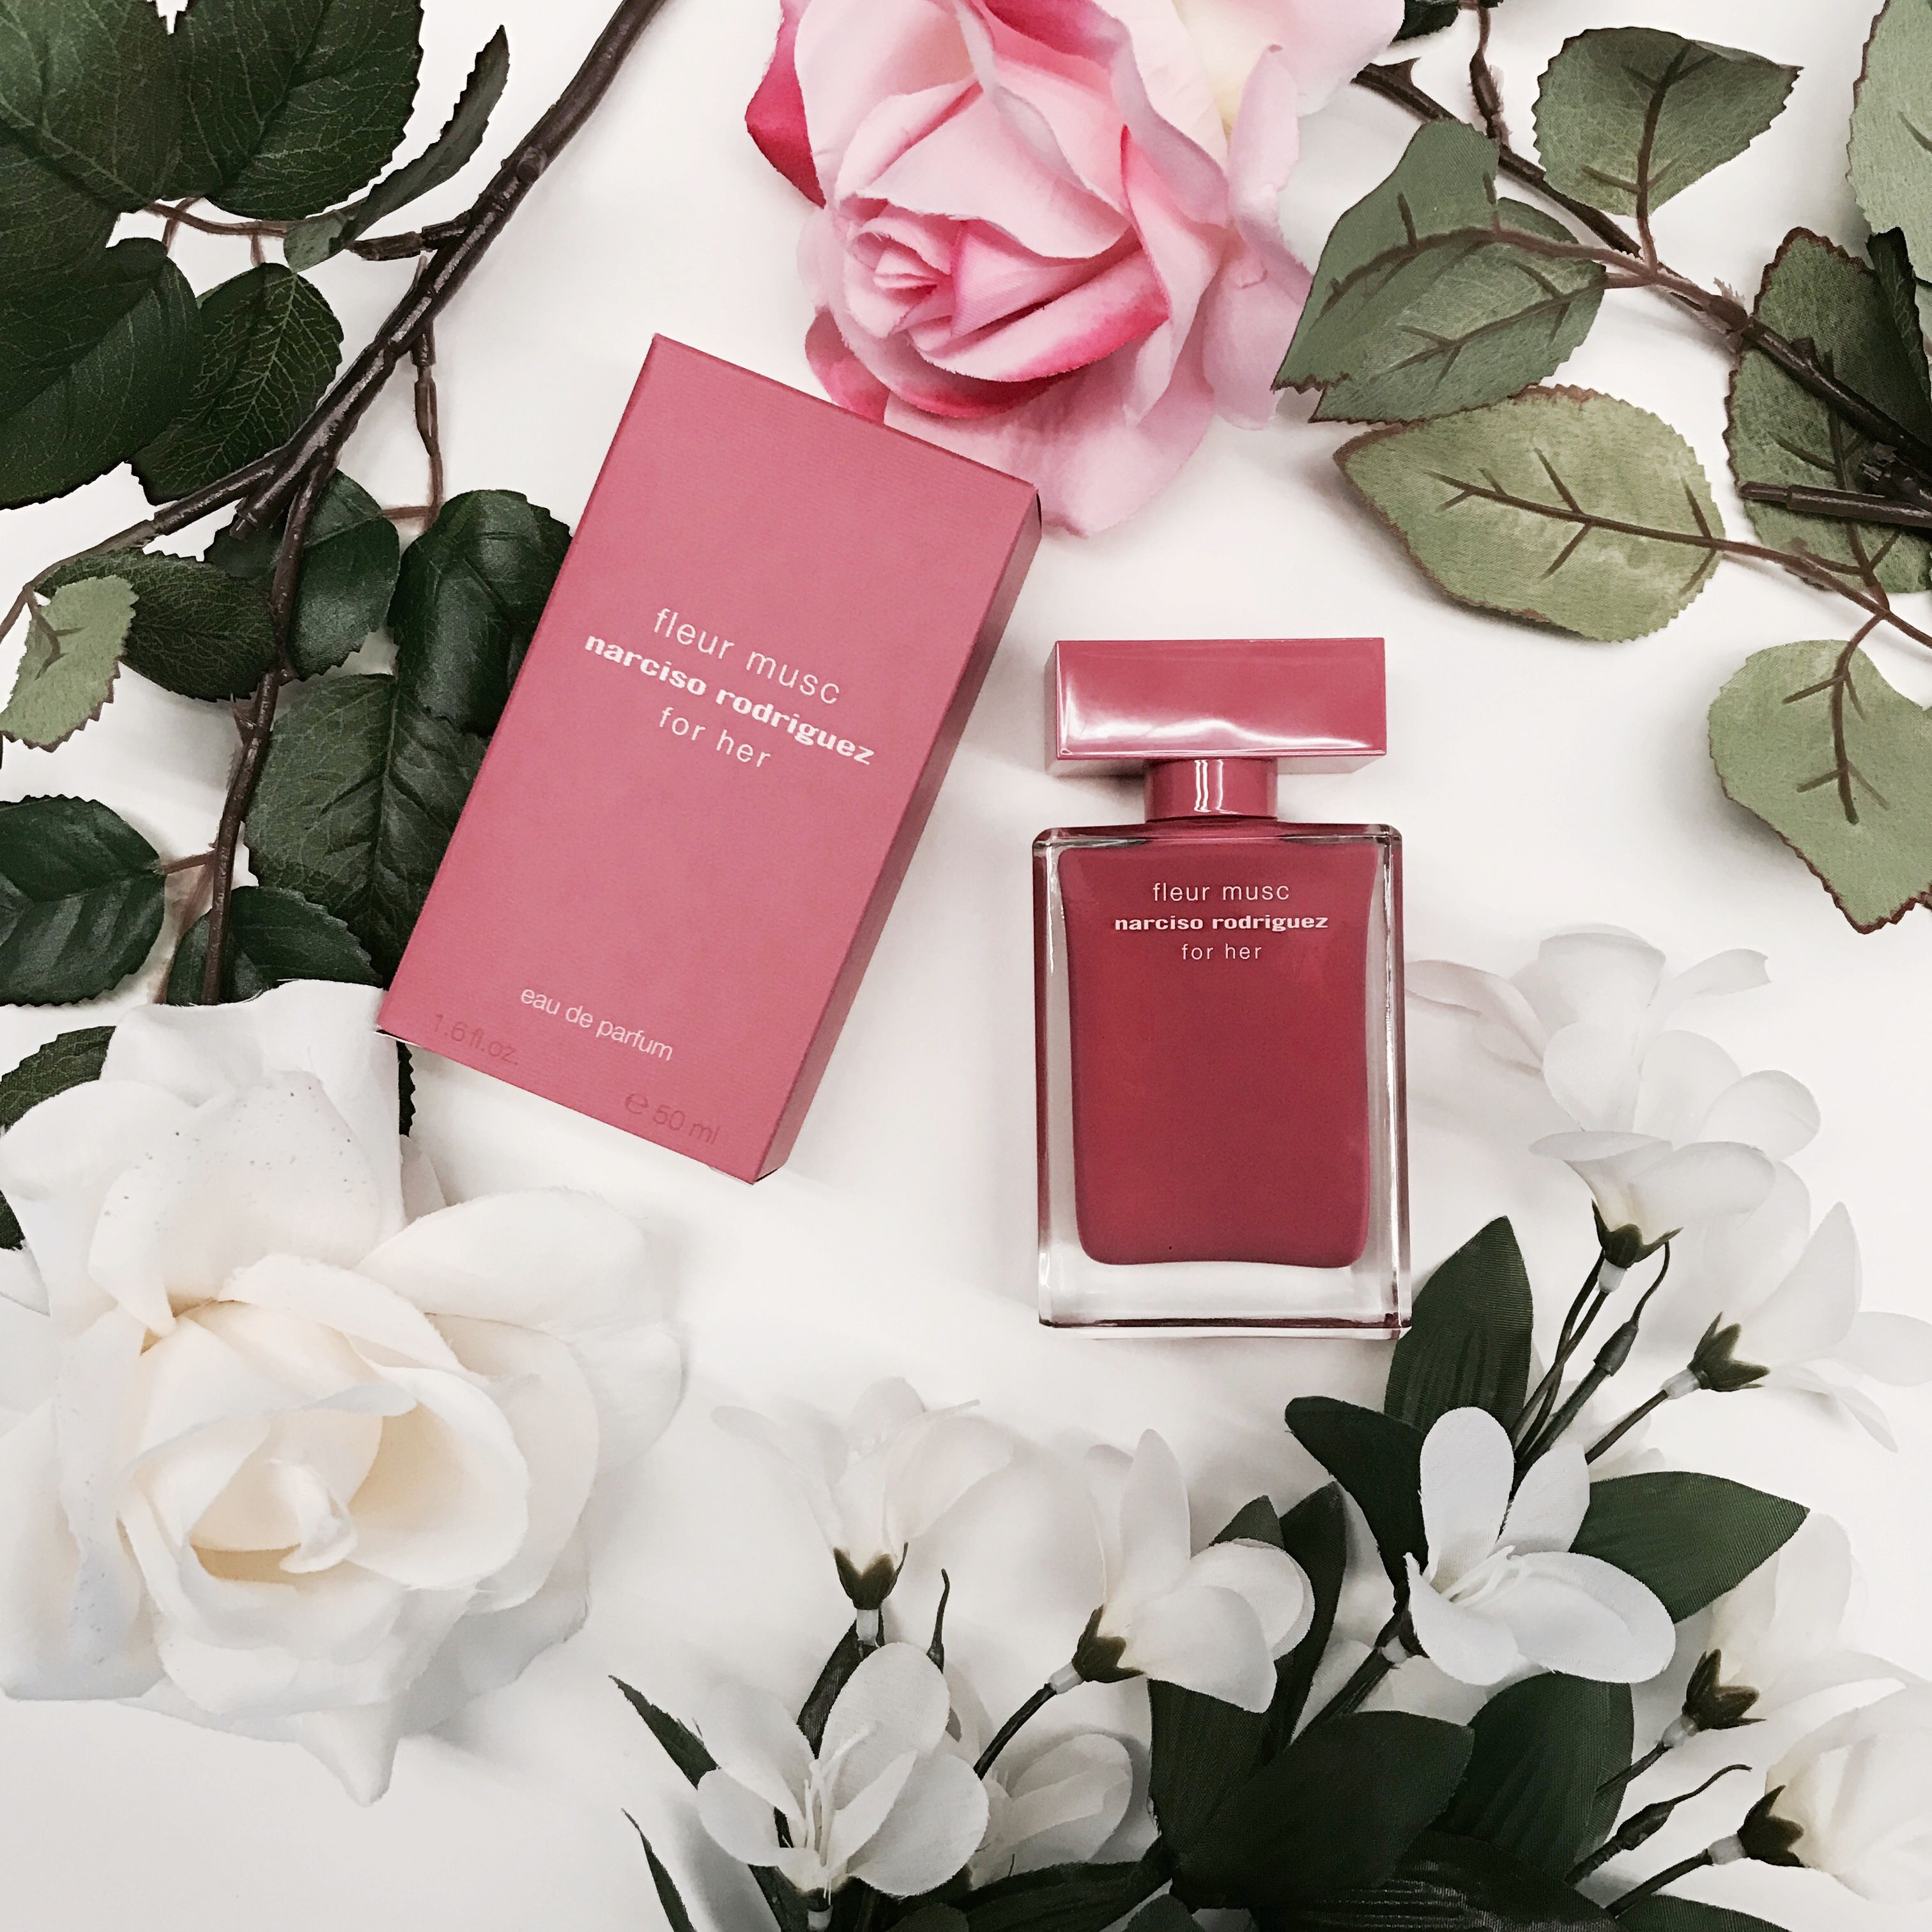 Narciso Rodriguez Fleur Musc For Her Products We Love Perfume